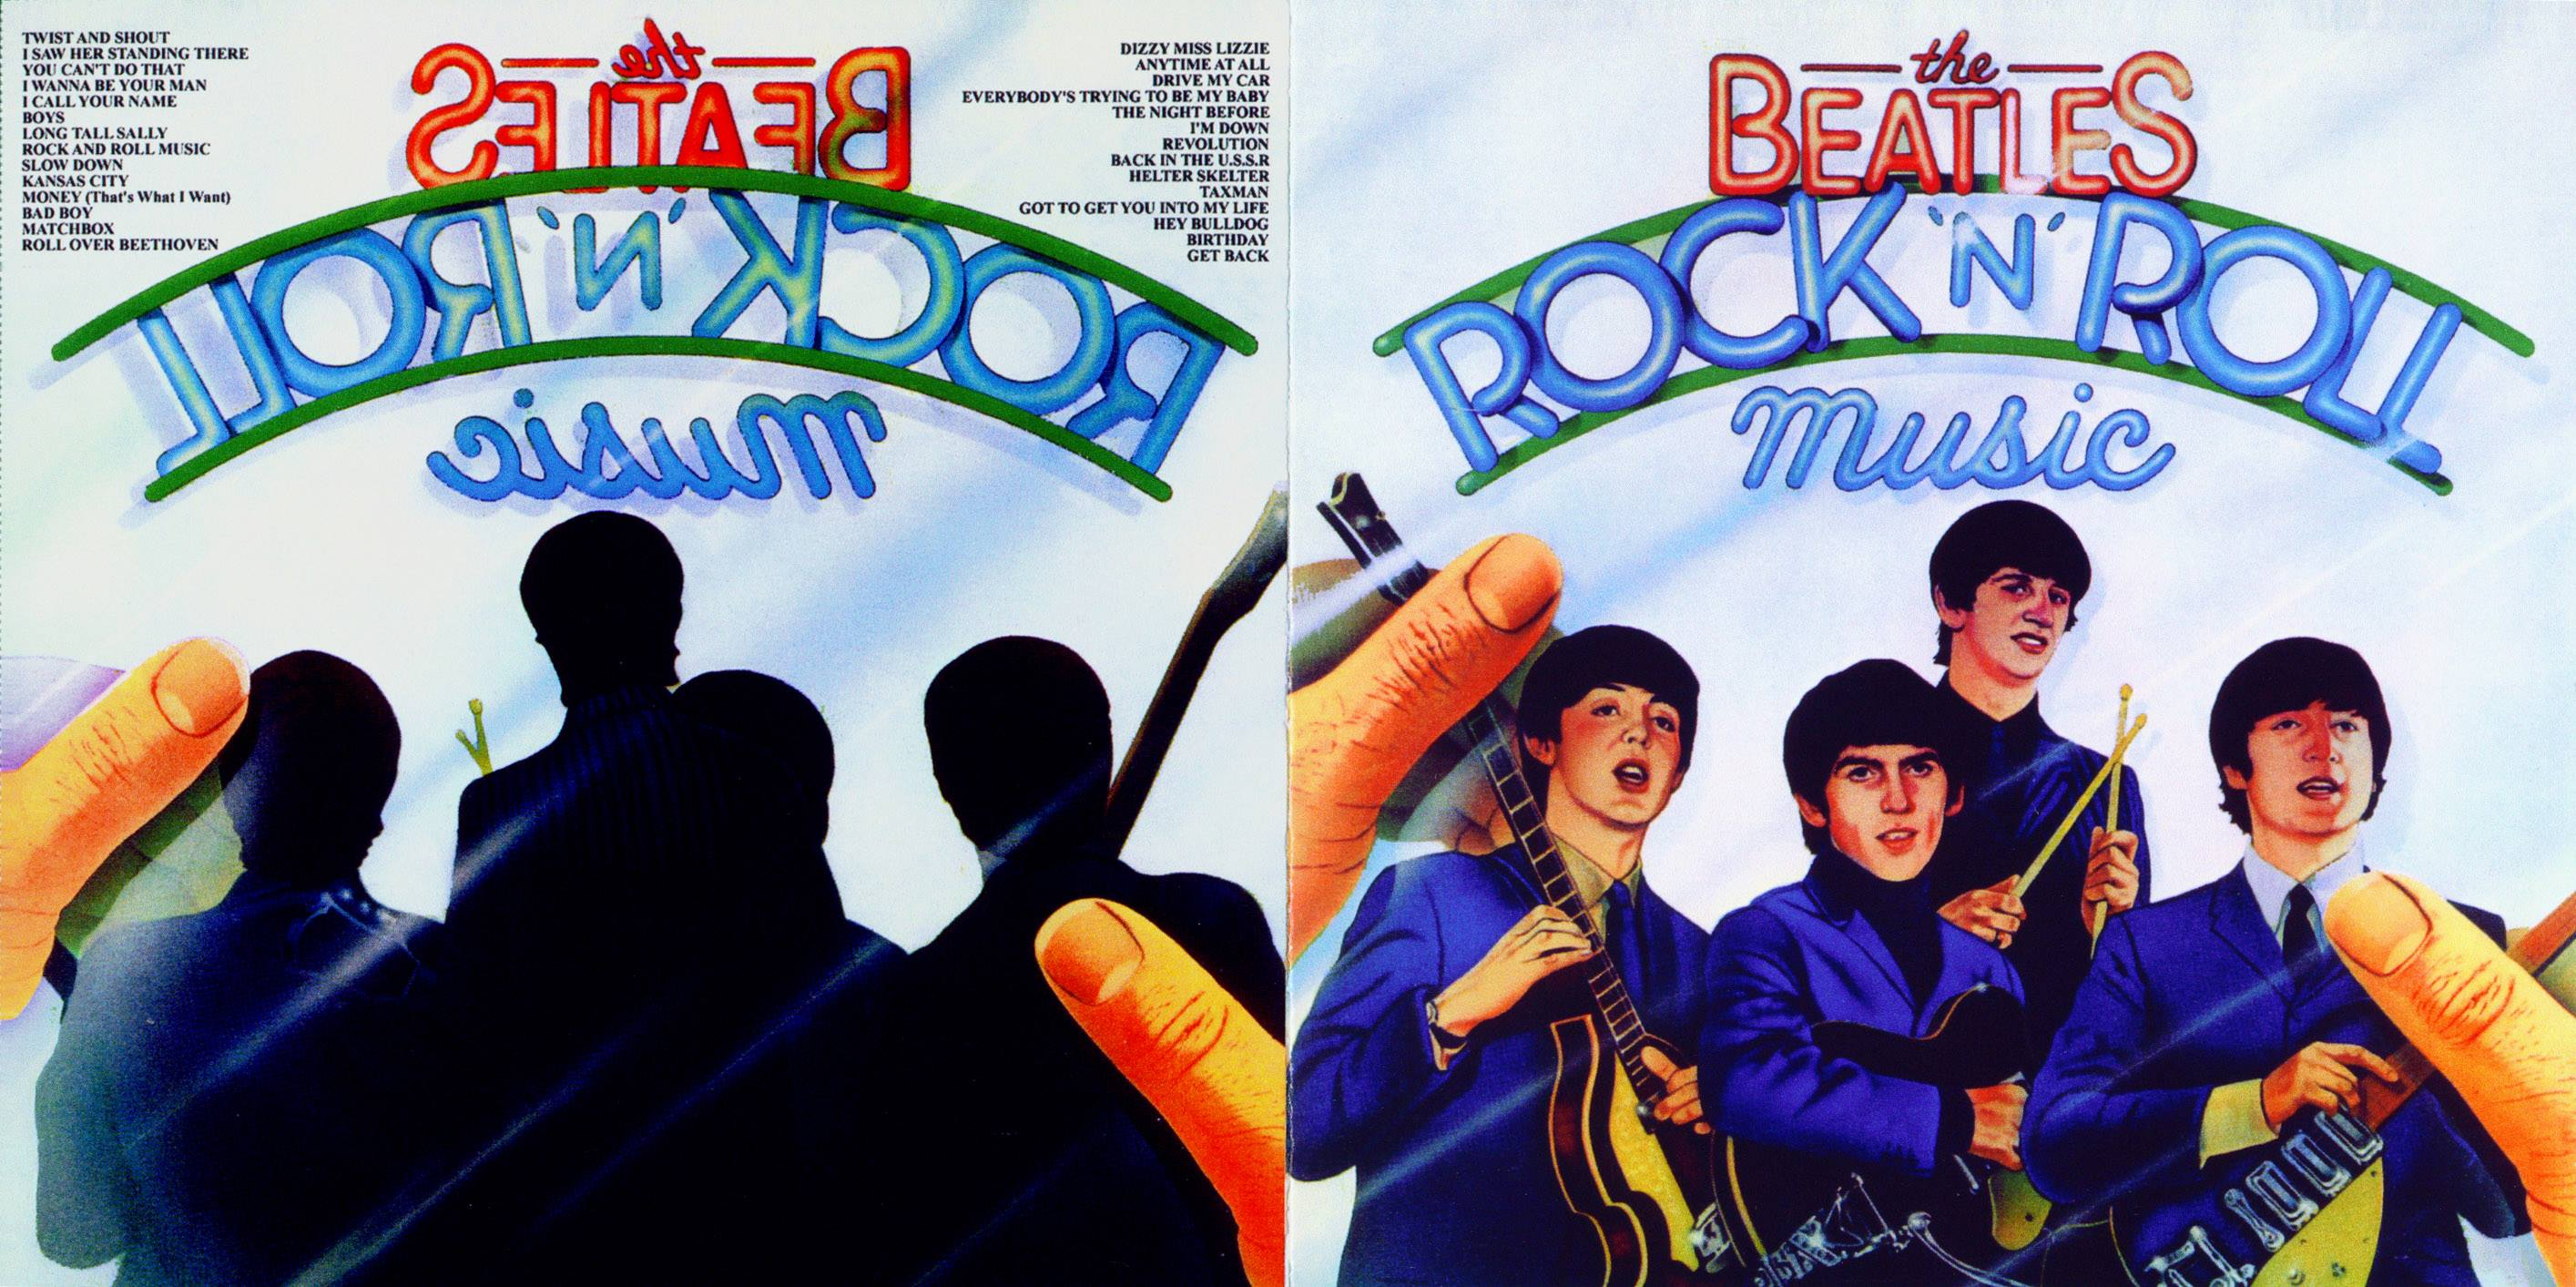 beatles impact on rock n' roll Beatles: impact on rock n' roll perhaps music can be considered to be one of the most universal things in the world.